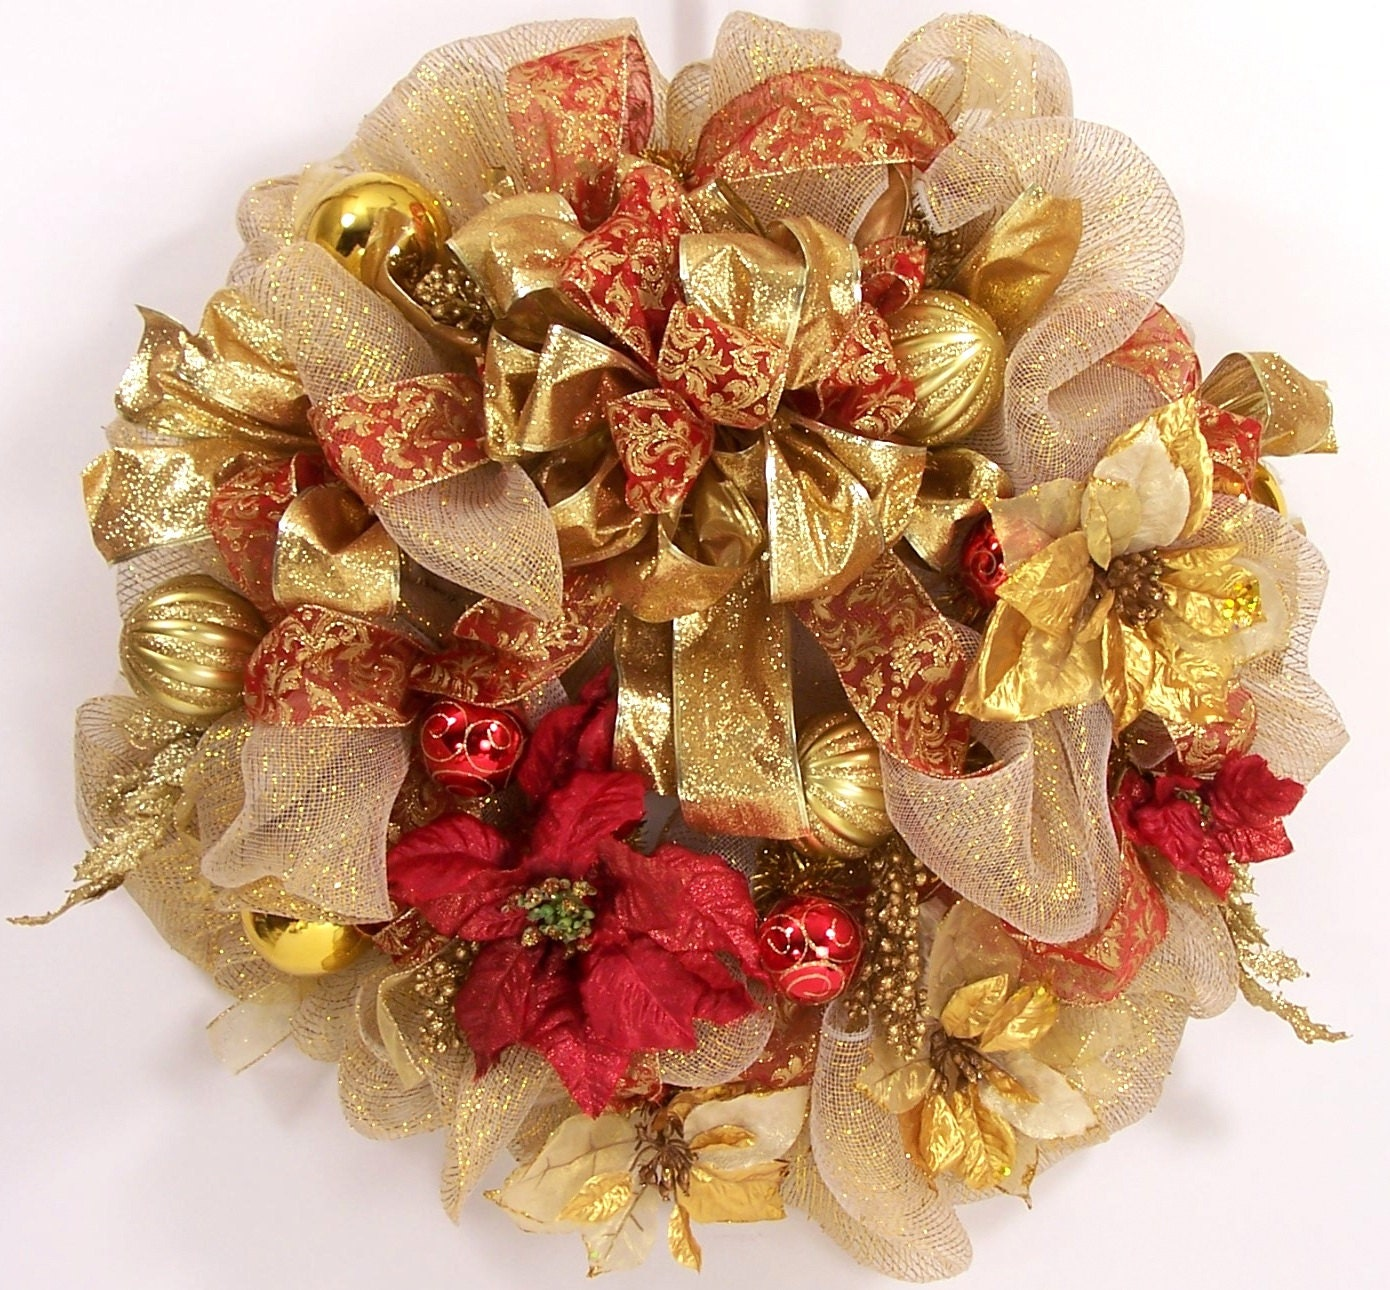 Image result for christmas red package with gold ribbon